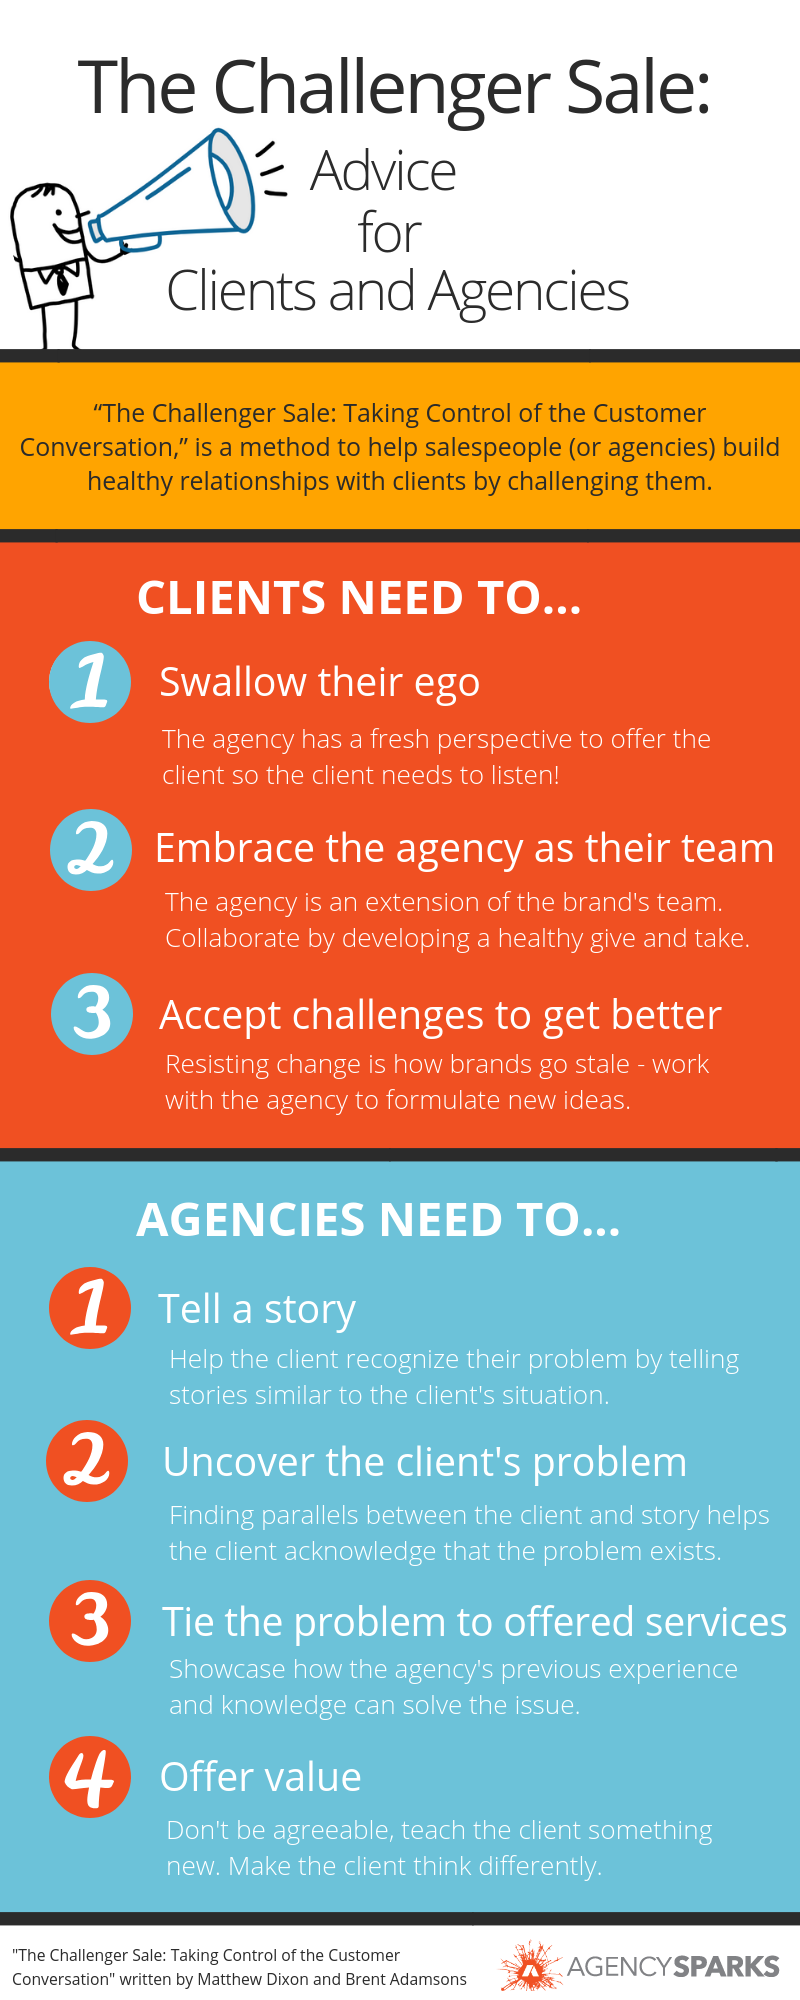 """""""The Challenger Sale"""" is a sales book relevant to not only agencies but clients as well. Here are tips for agency and client-side marketers alike on how to embrace being challengers and avoid """"order-taking."""""""